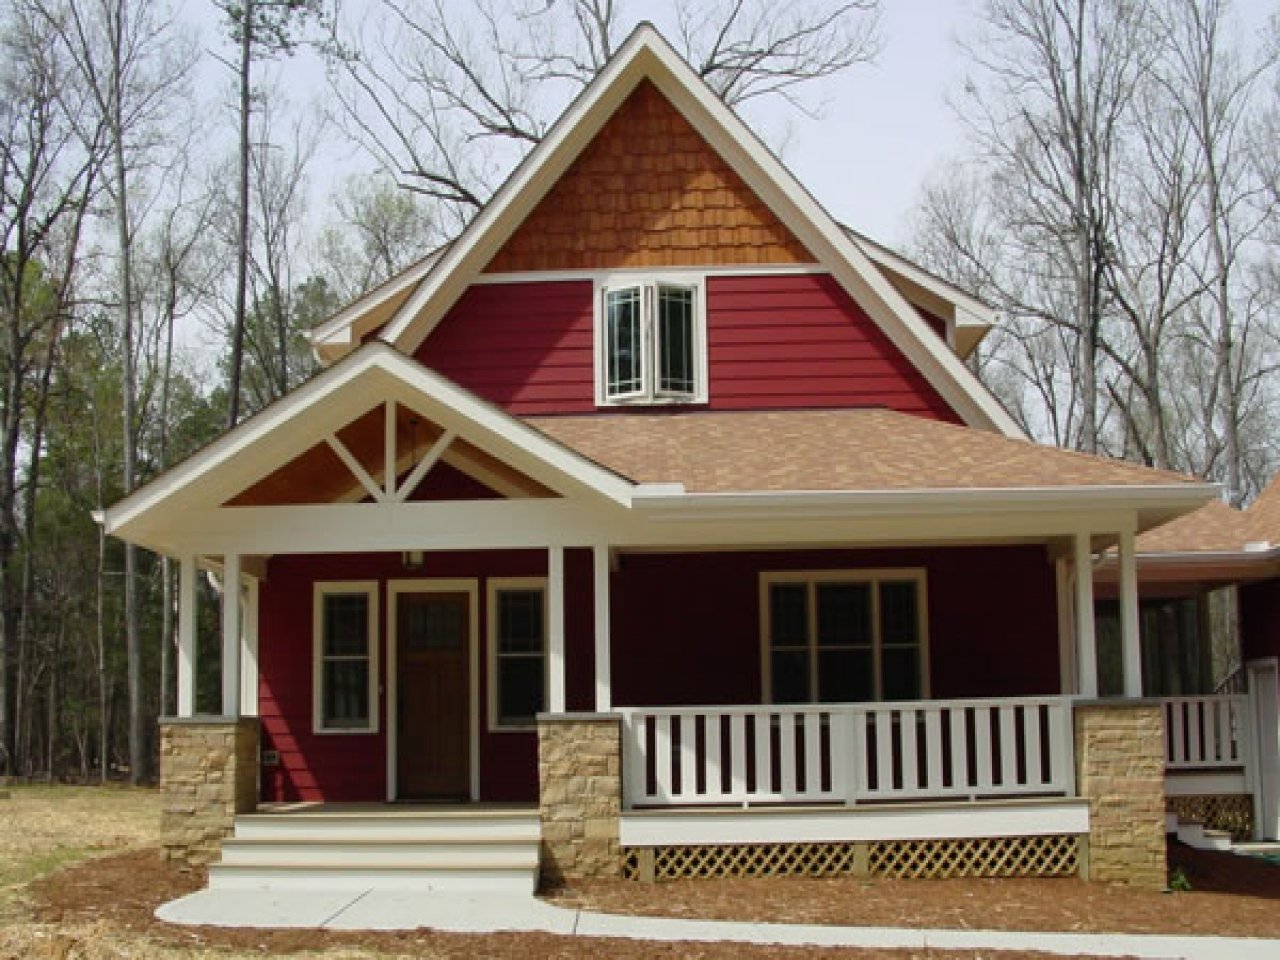 Craftsman house plans simple roof classic craftsman for Classic minimalist house design